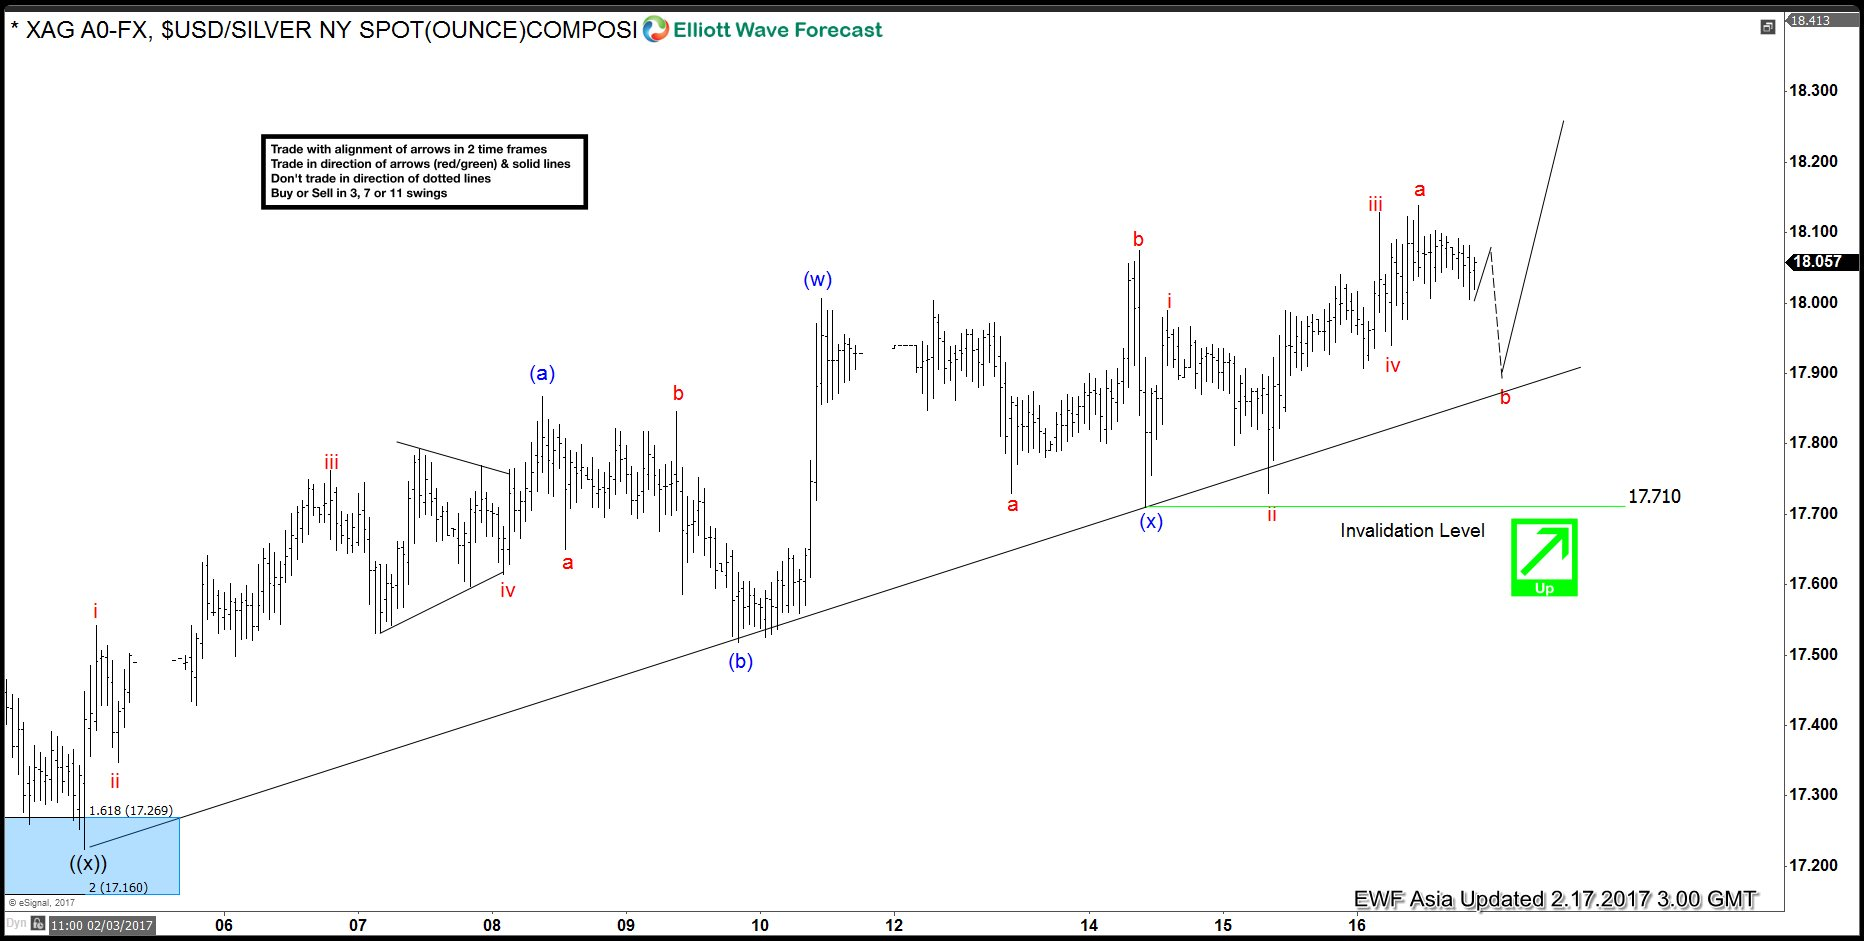 Silver Elliott Wave view: Extending higher